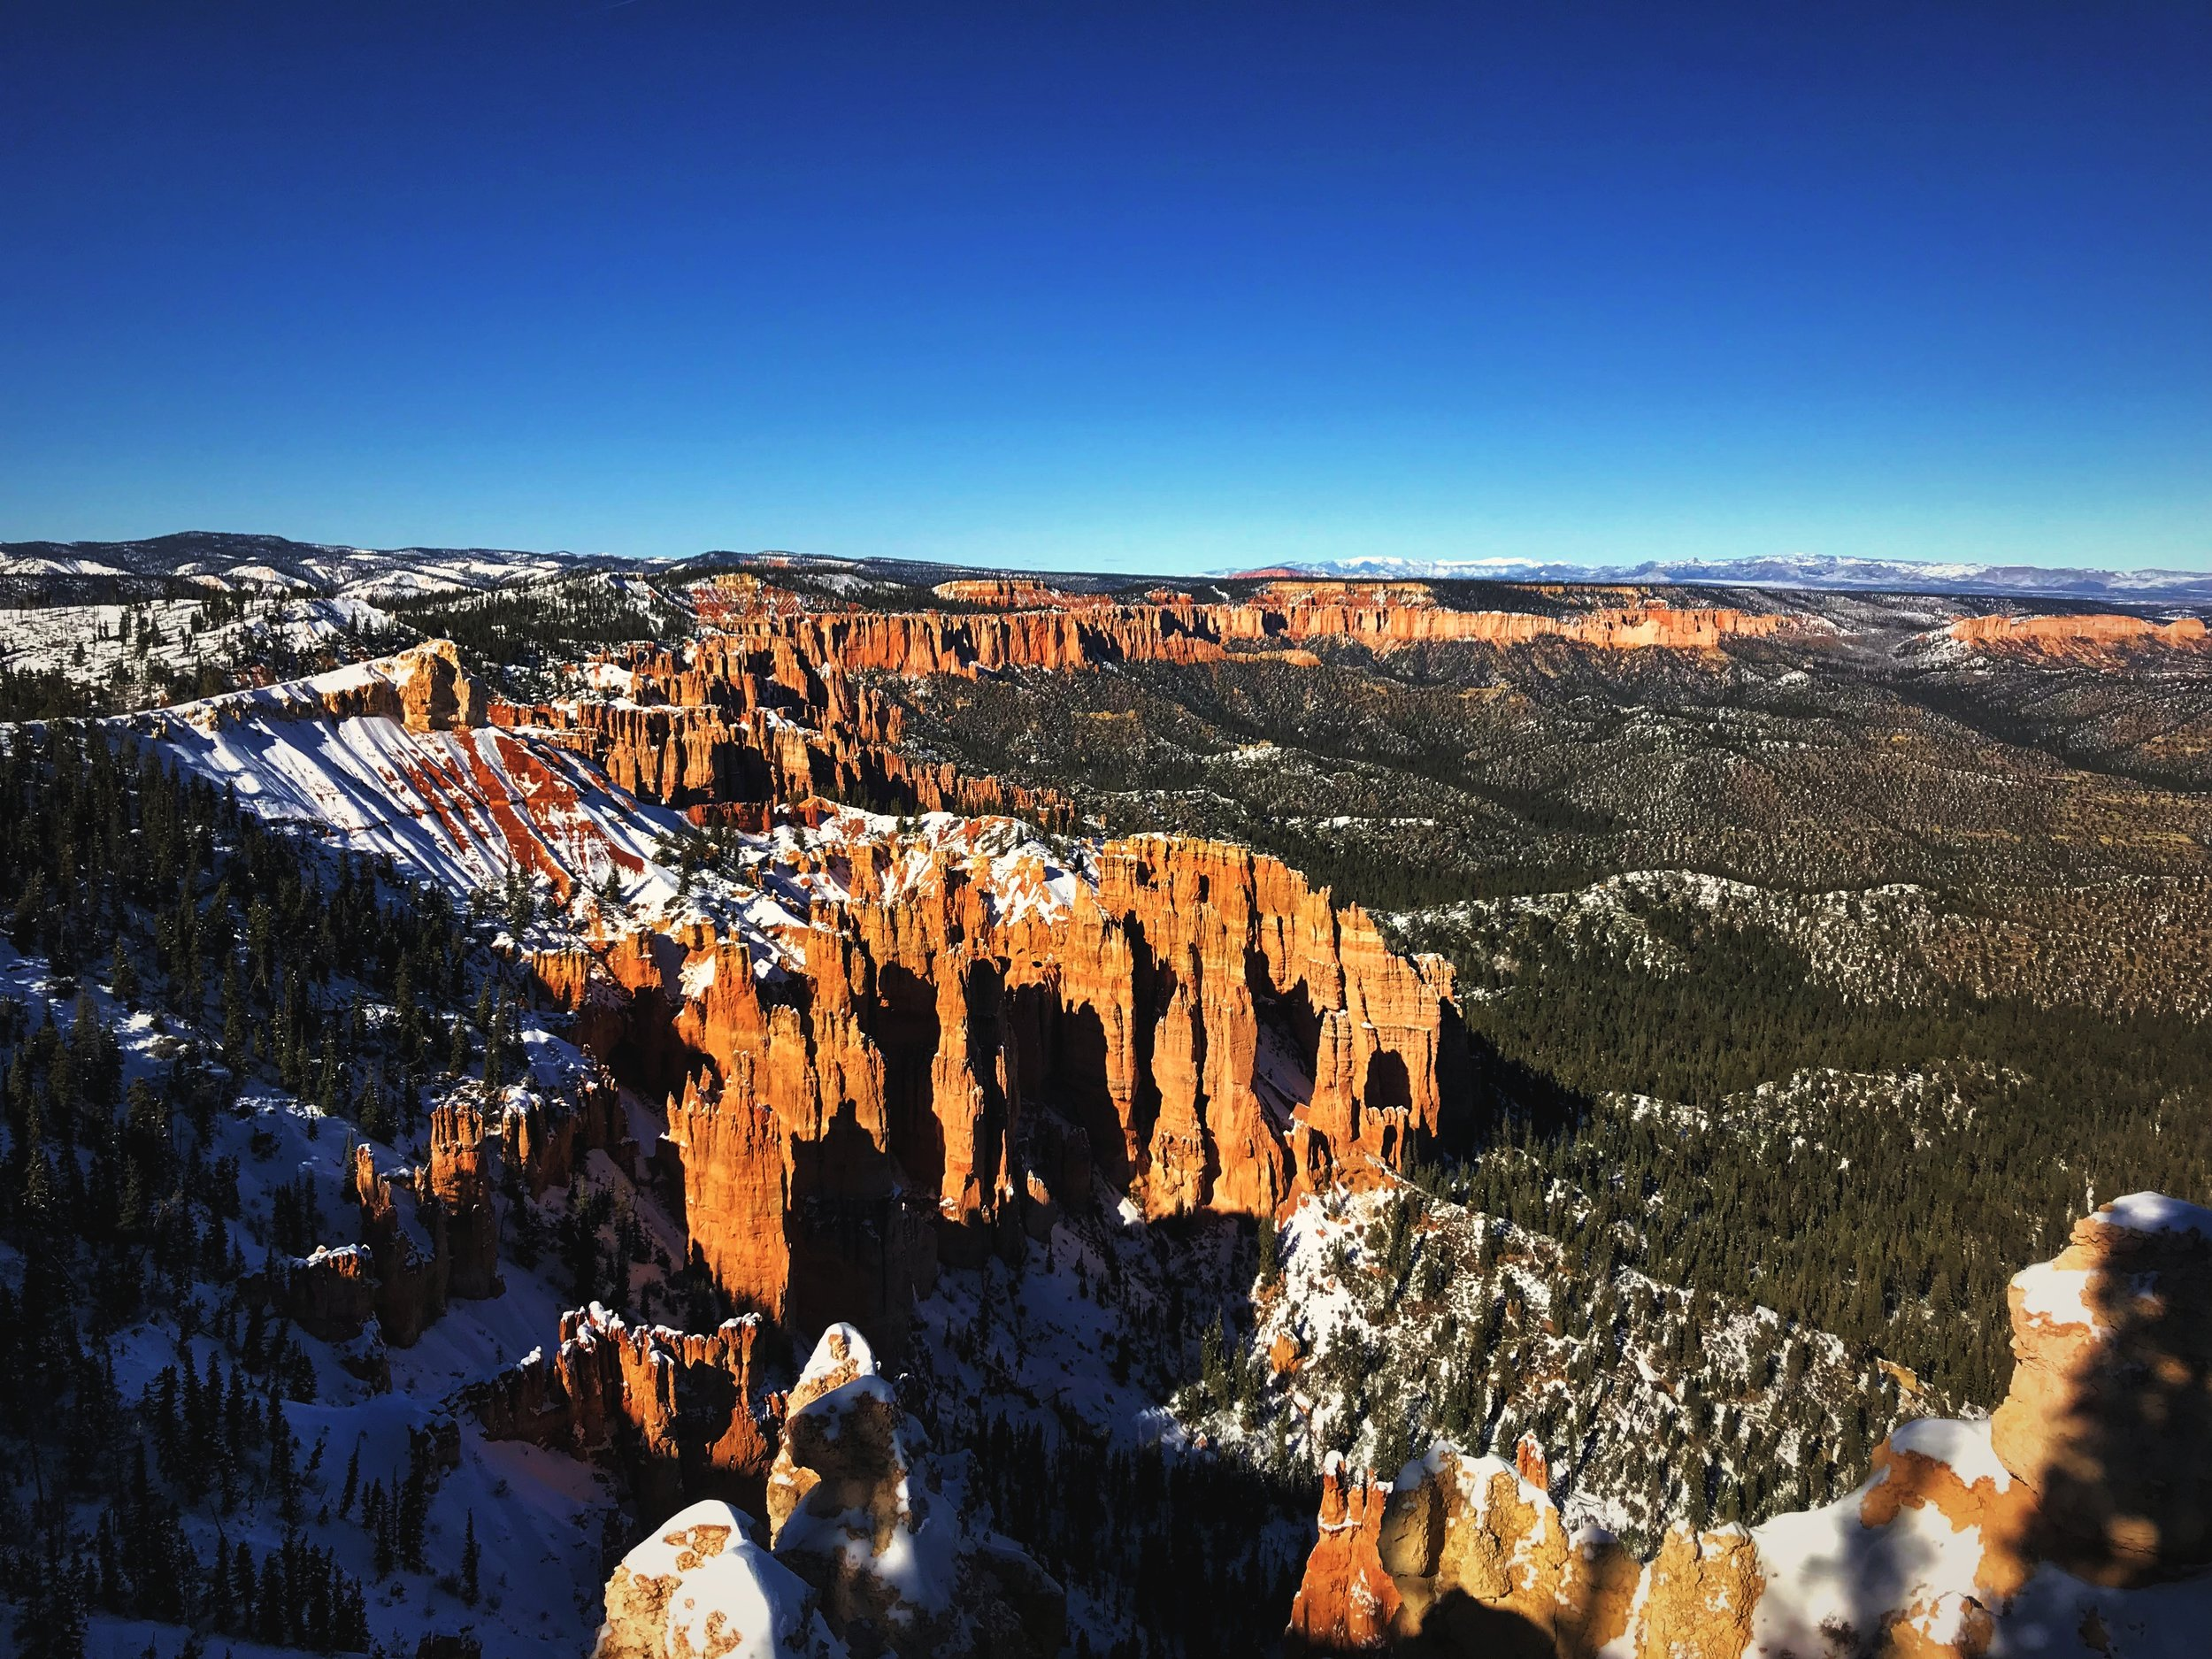 The Bryce Canyon Road follows the rim of the canyon, pictured here.